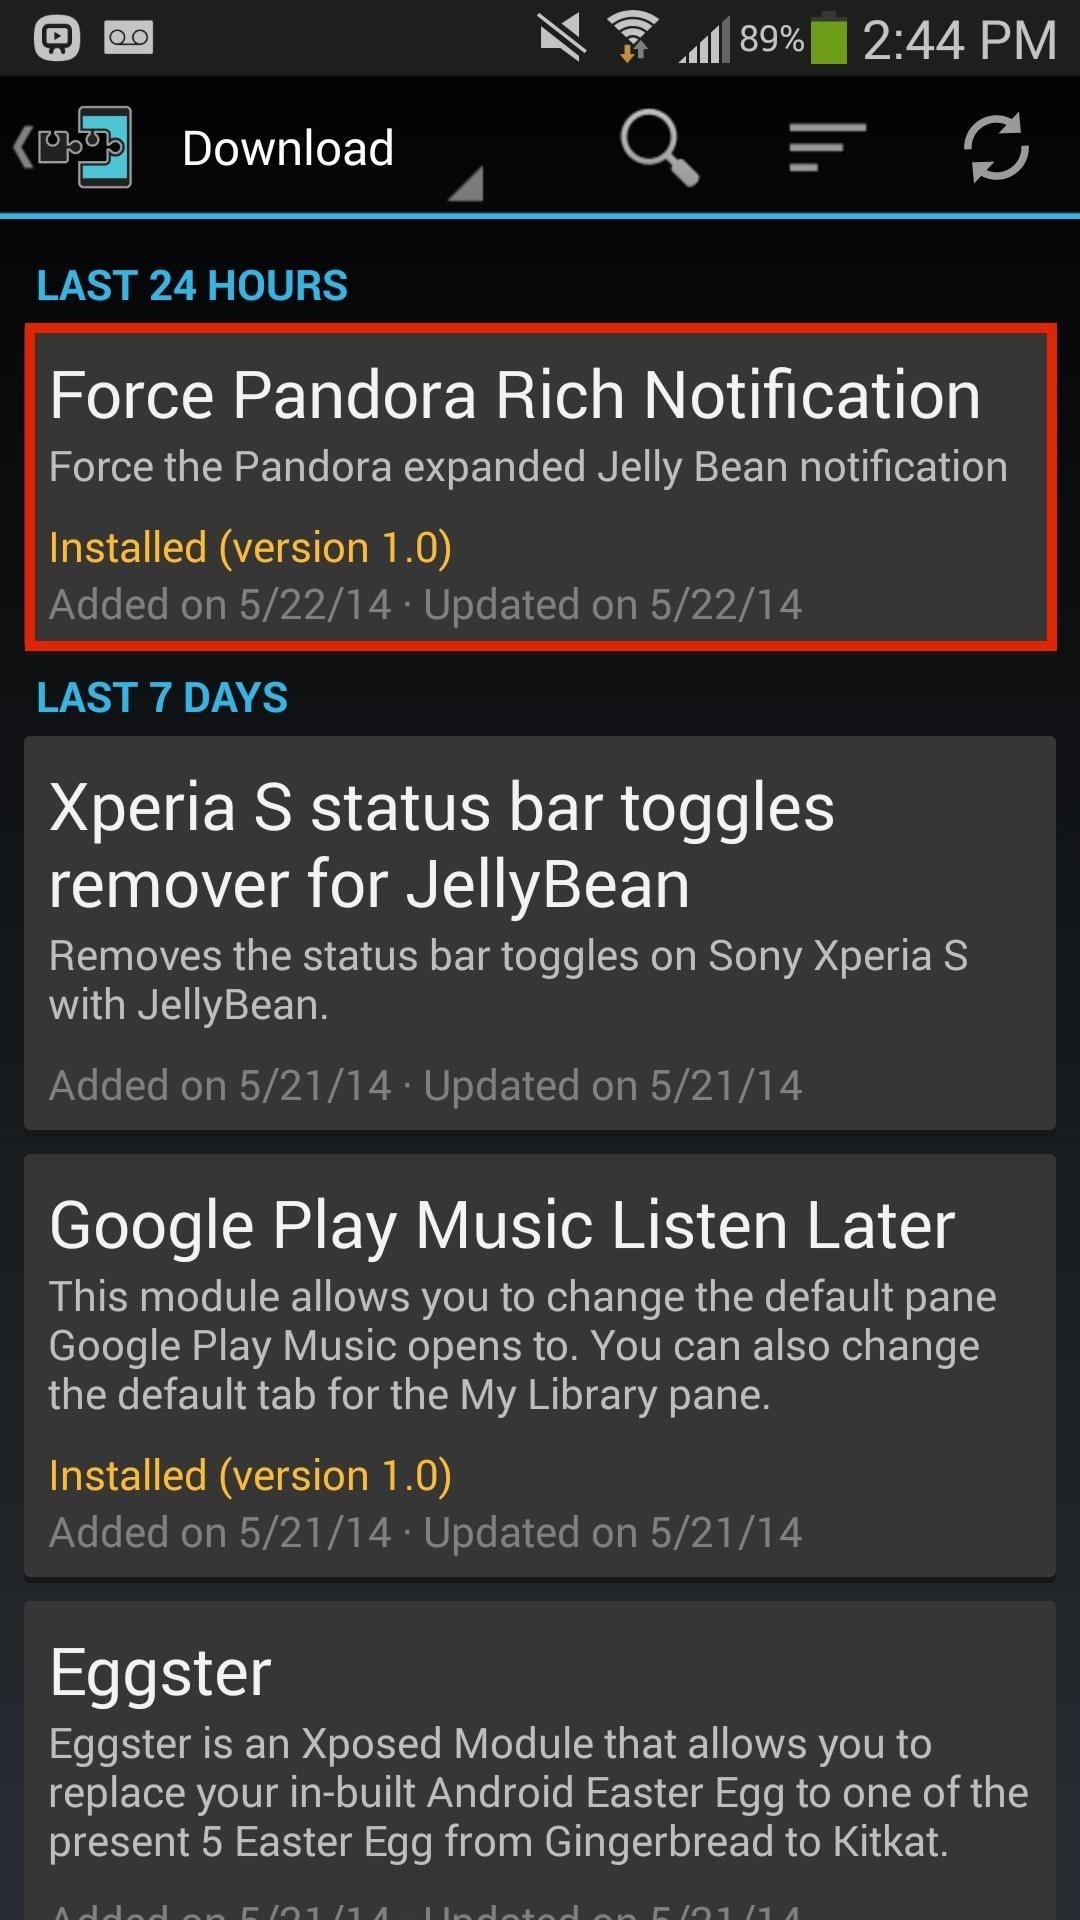 How to Get Quick-Access Pandora Controls in the Notification Tray of Your Galaxy Note 3